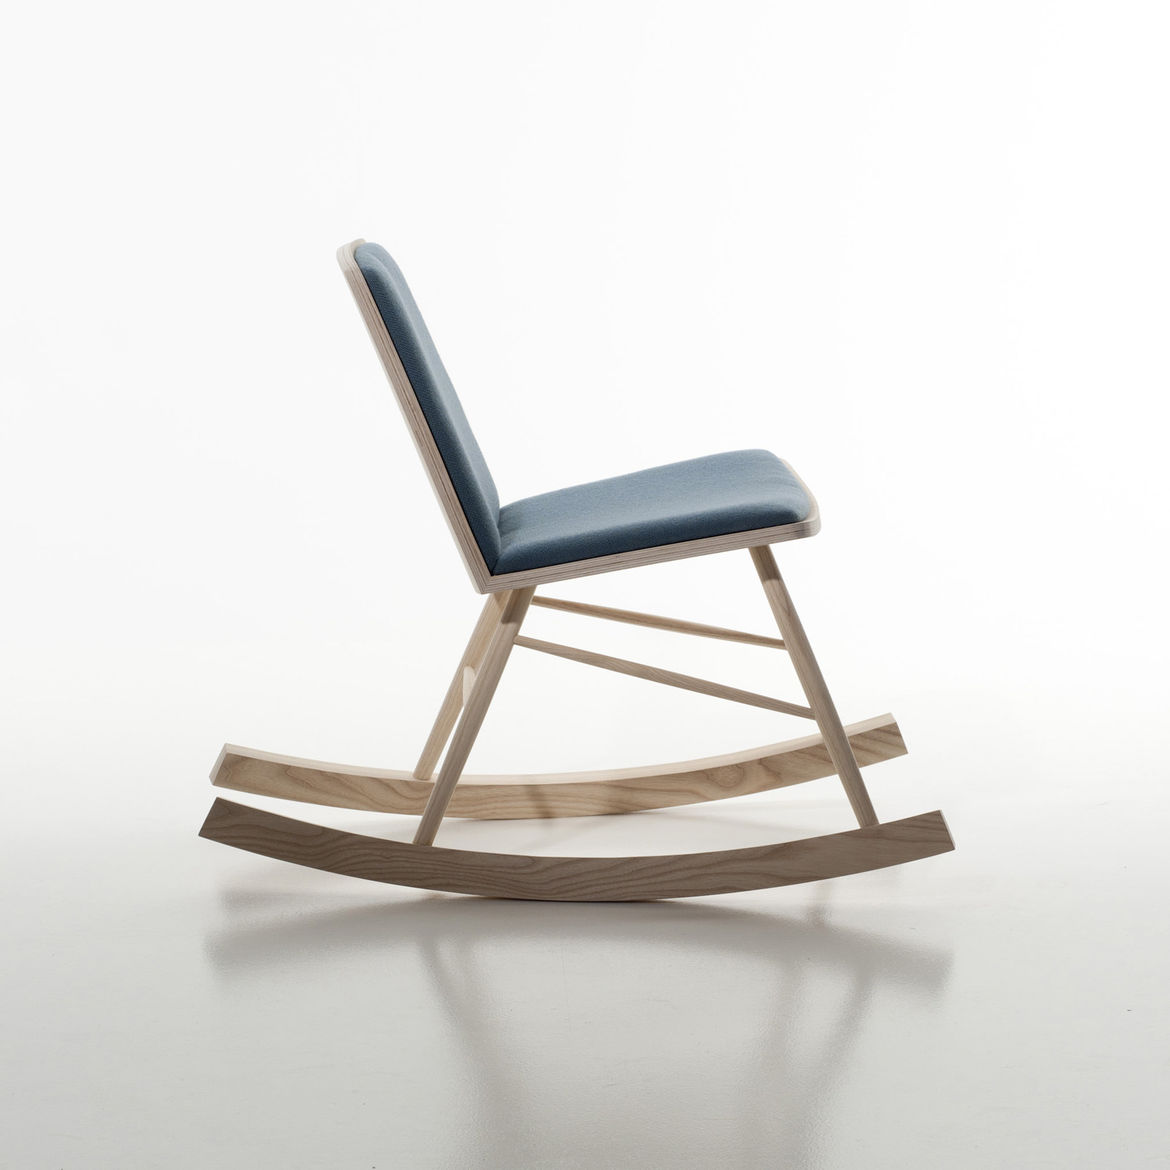 This ash rocker is by Marte Straalberg, a student at the Bergen National Academy of the Arts, and was shown in the Greenhouse student design expo.